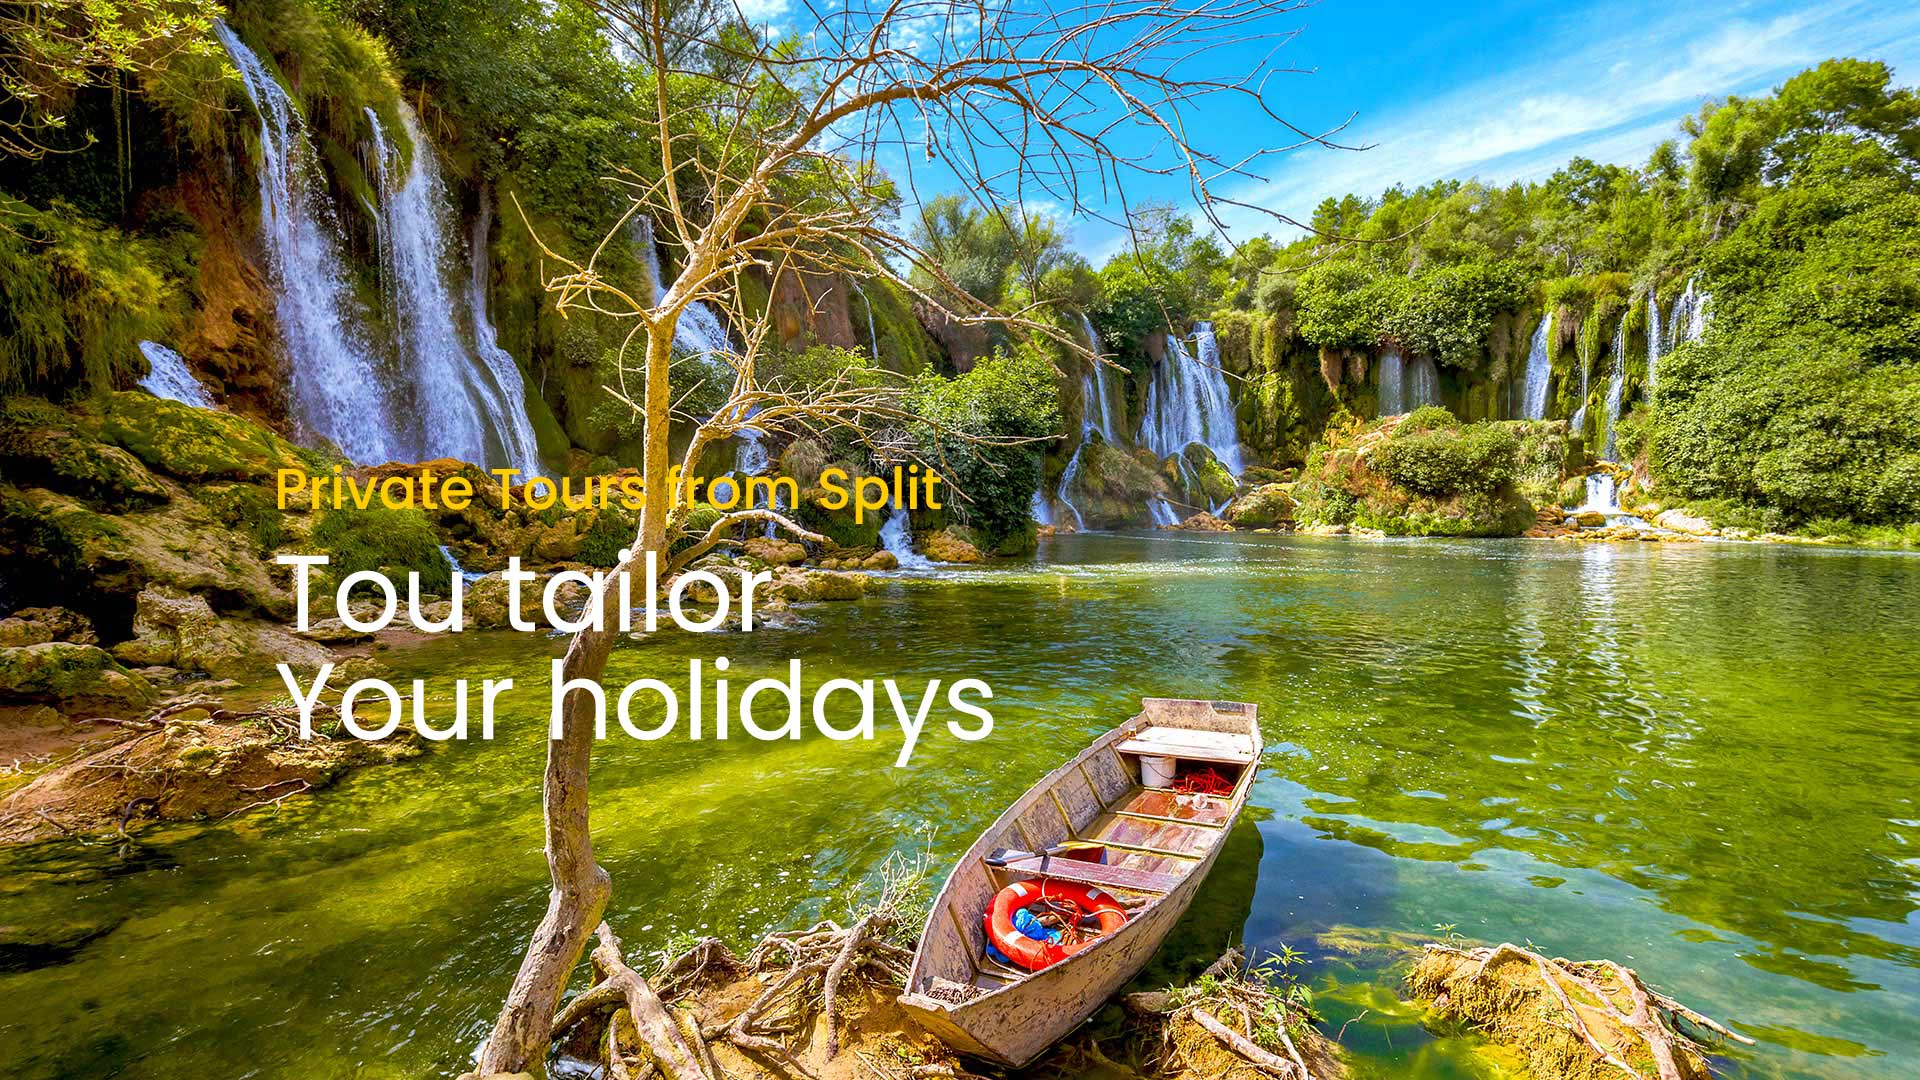 private tours from Split by Sugaman Tours